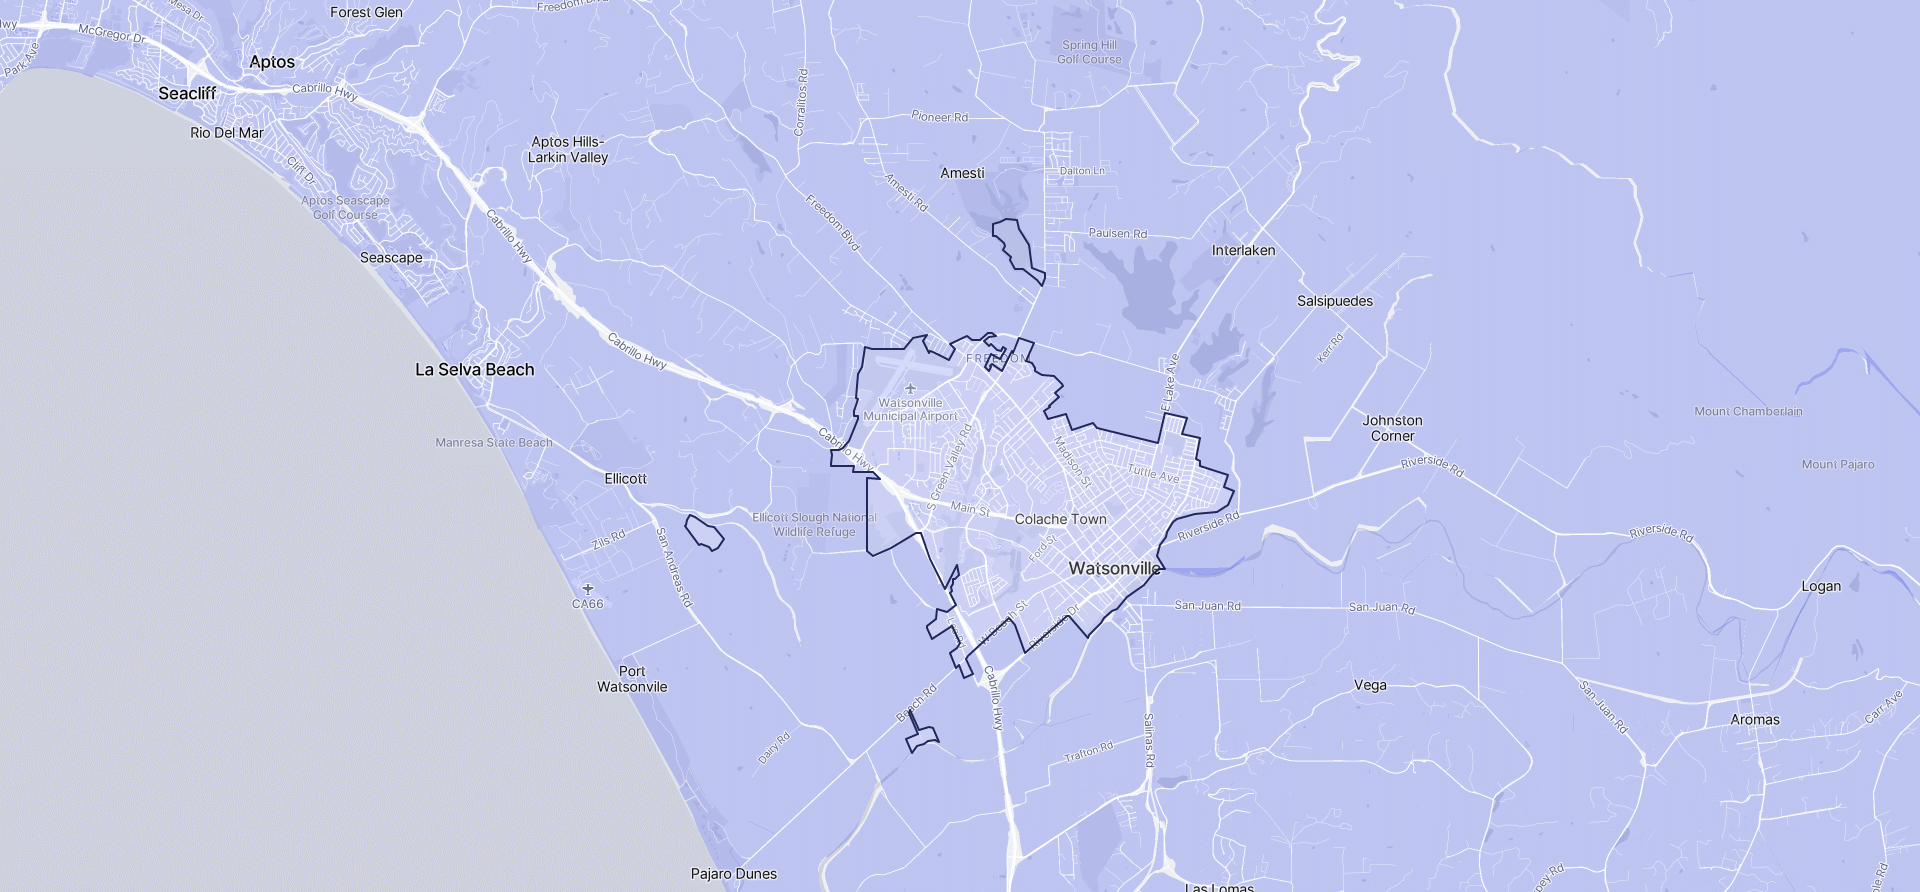 Image of Watsonville boundaries on a map.